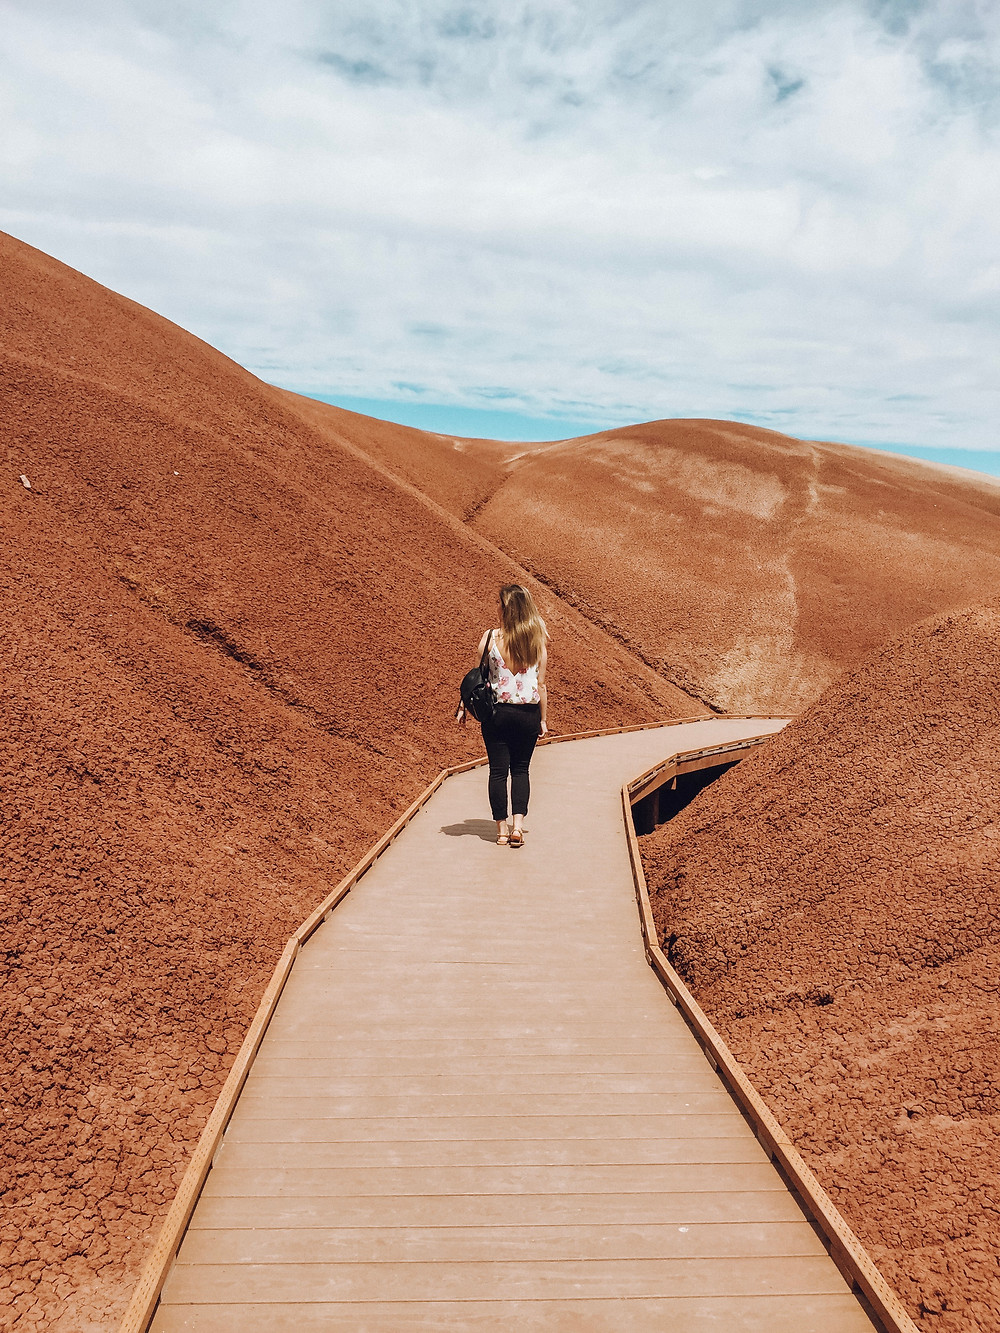 Walking the Painted Hills Boardwalk